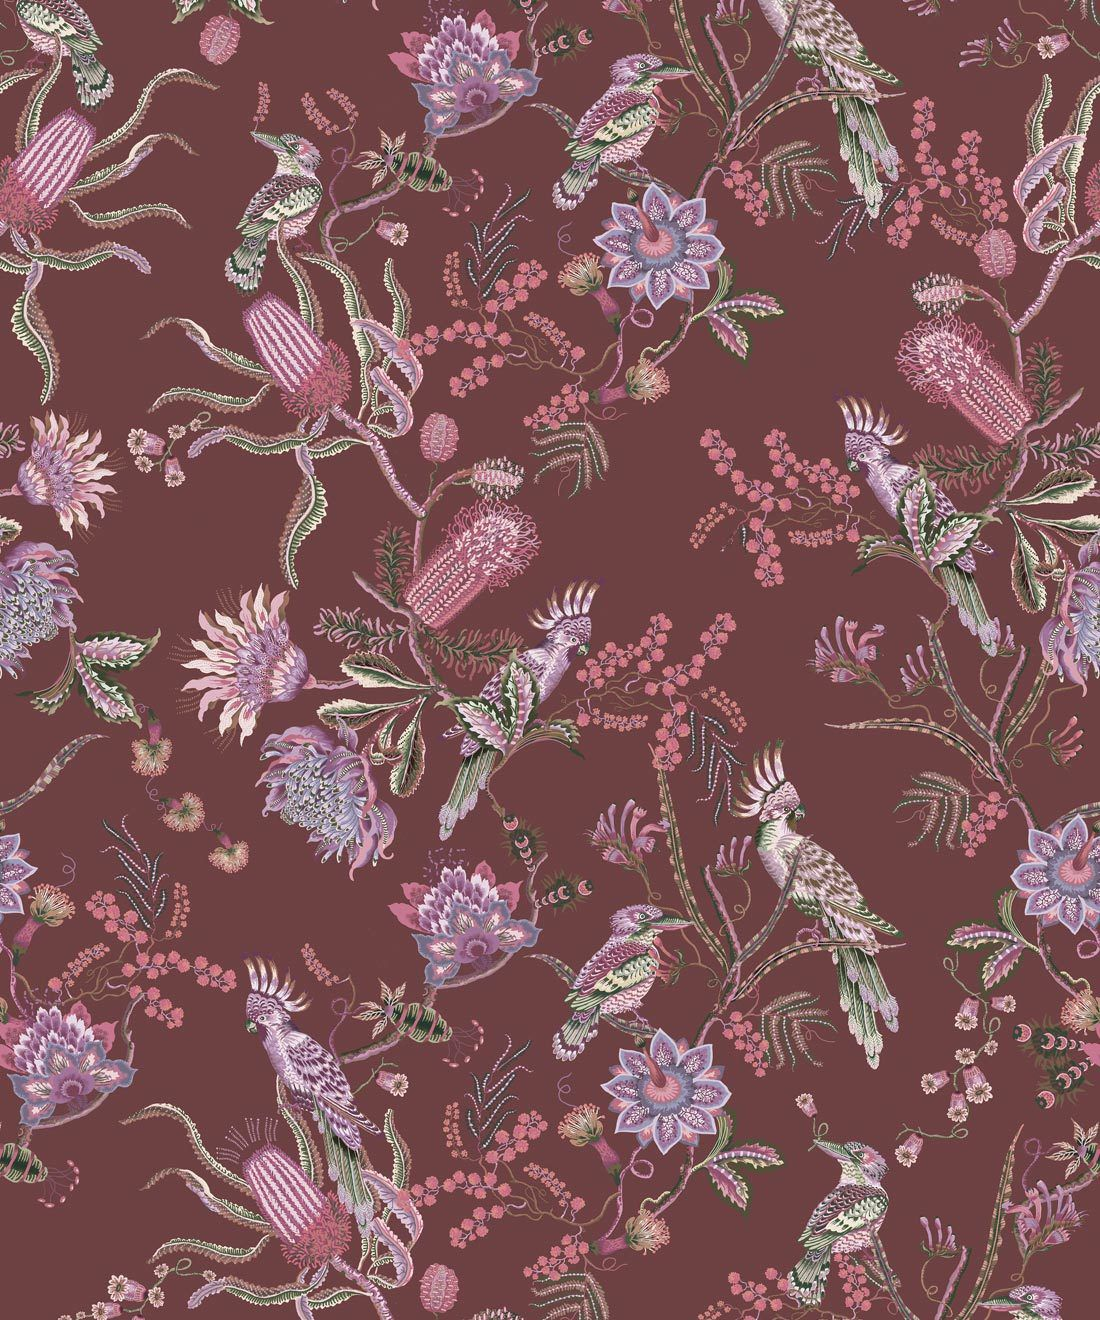 Matilda Wallpaper • Cockatoo, kookaburra • Australian Wallpaper • Milton & King USA • Plum Swatch